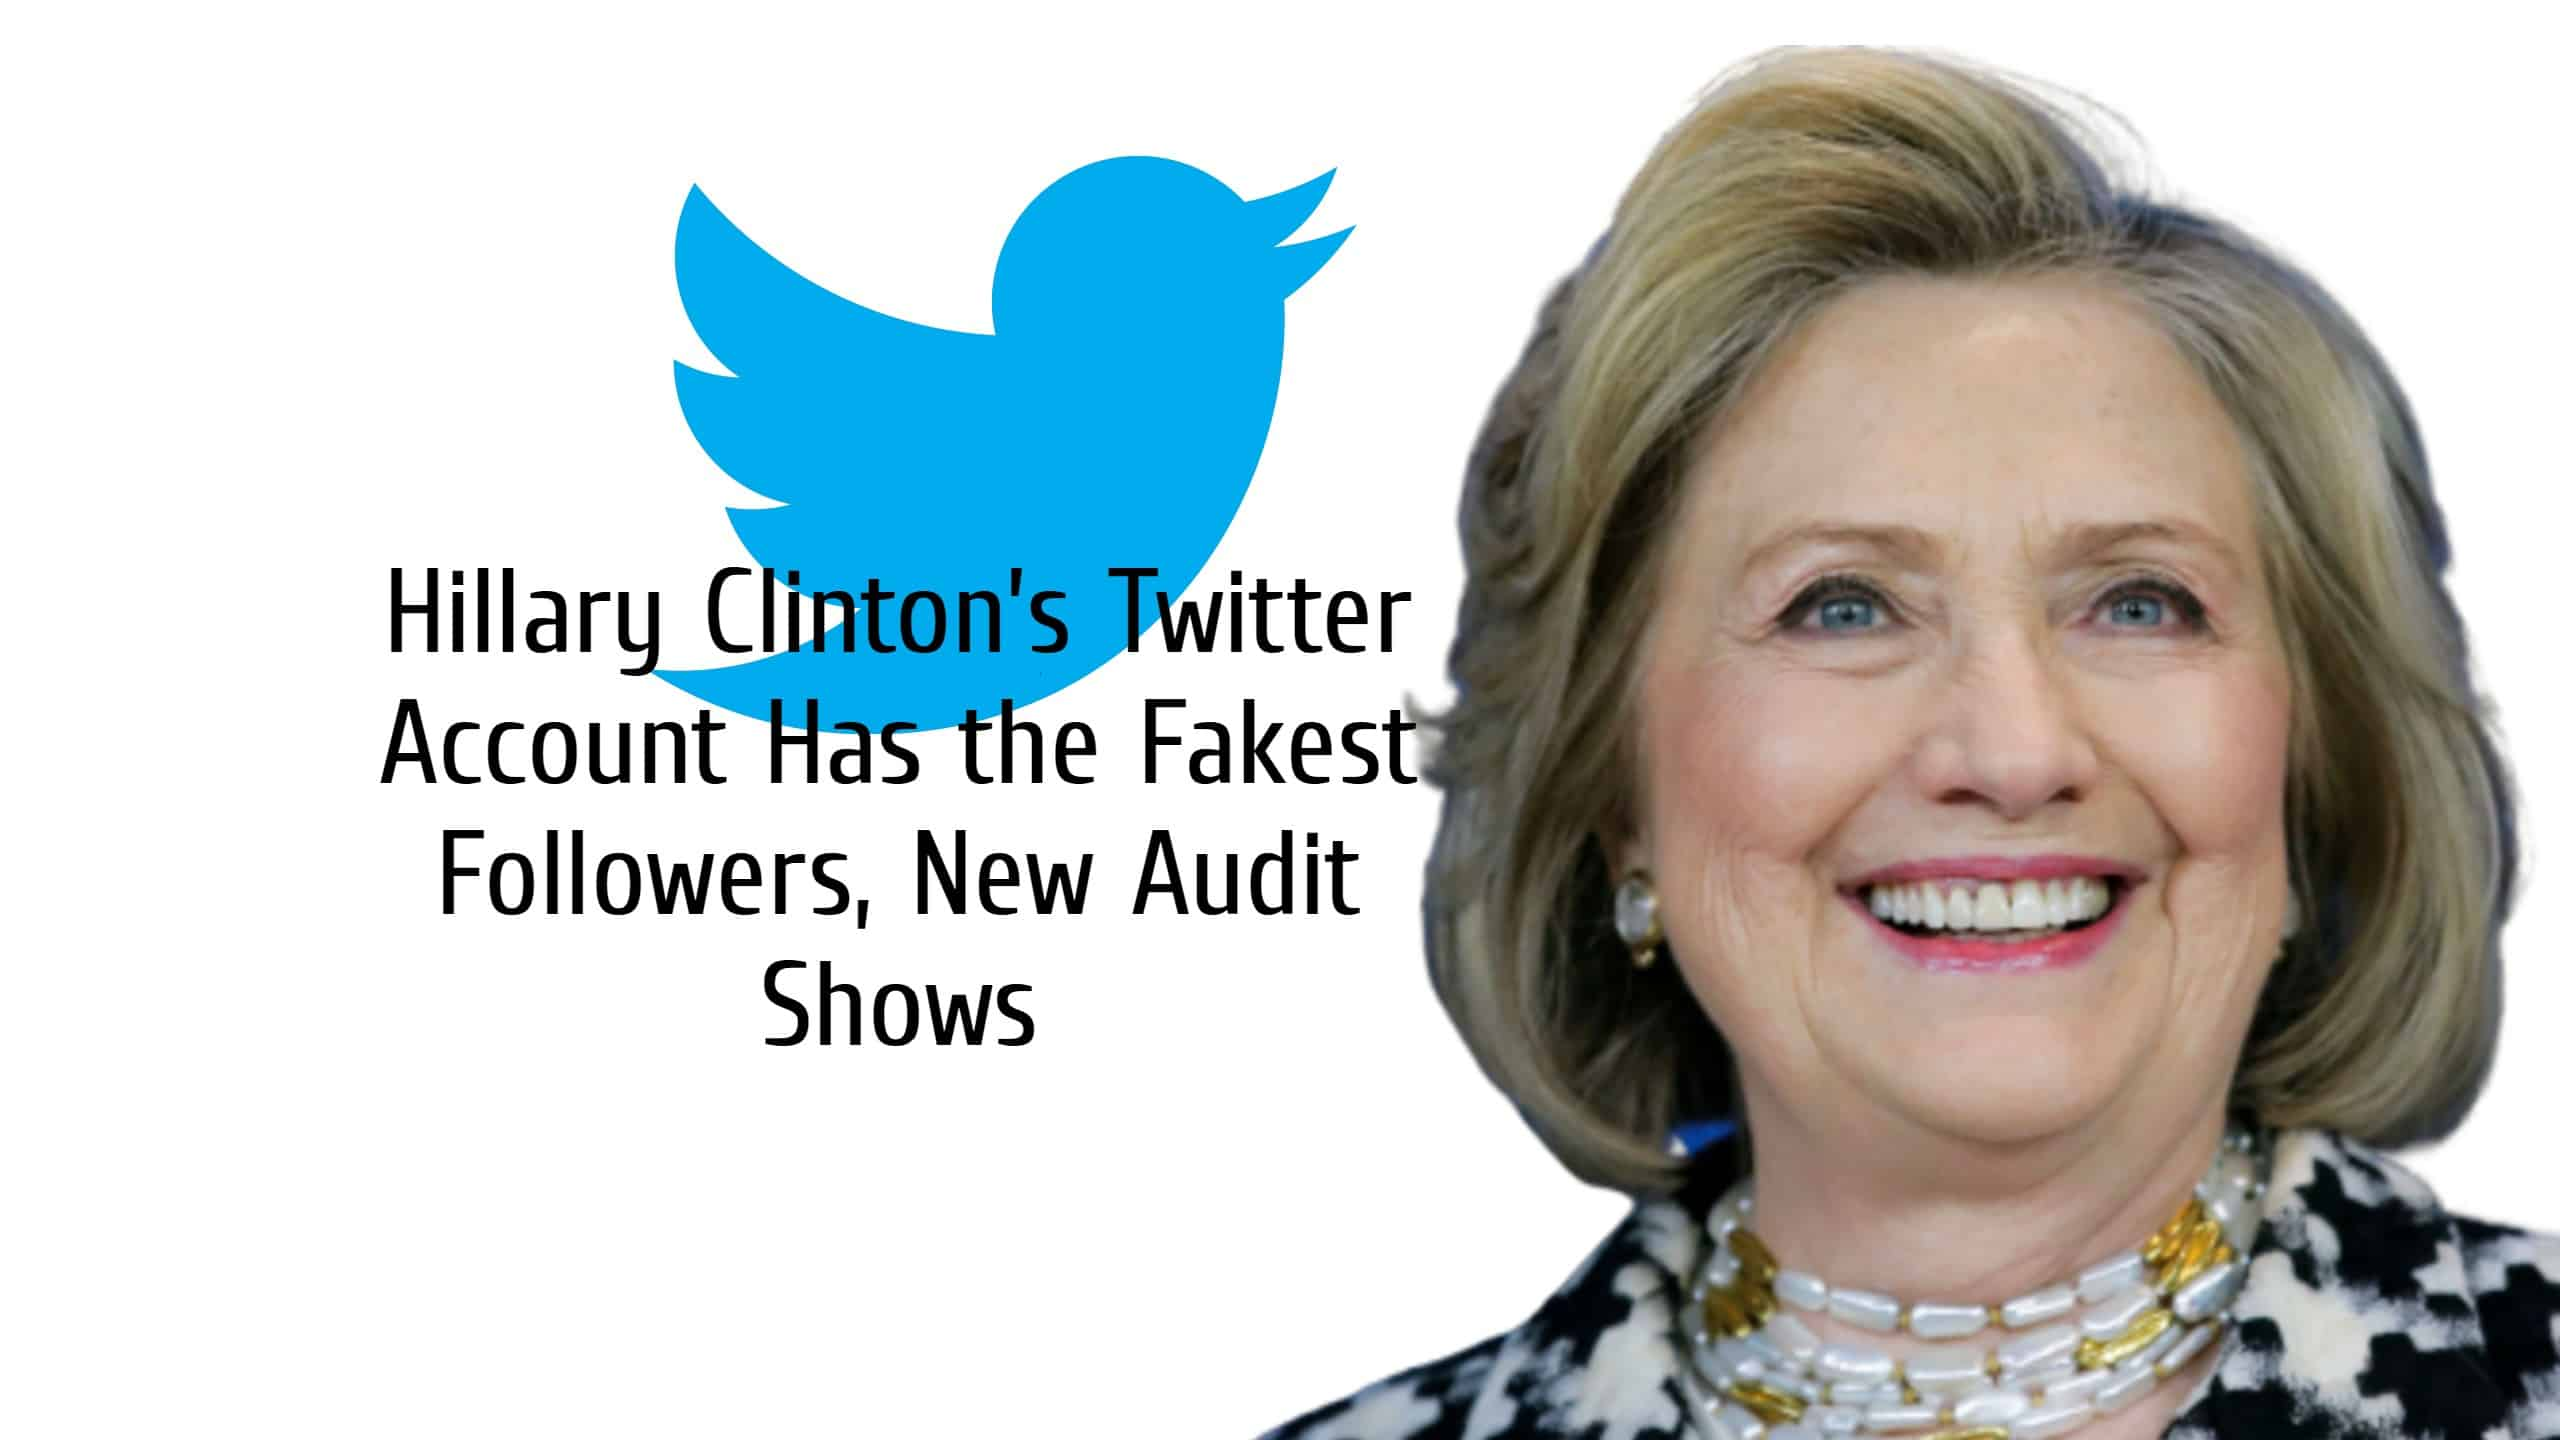 Hillary Clinton's Twitter Account Has the Fakest Followers, New Audit Shows